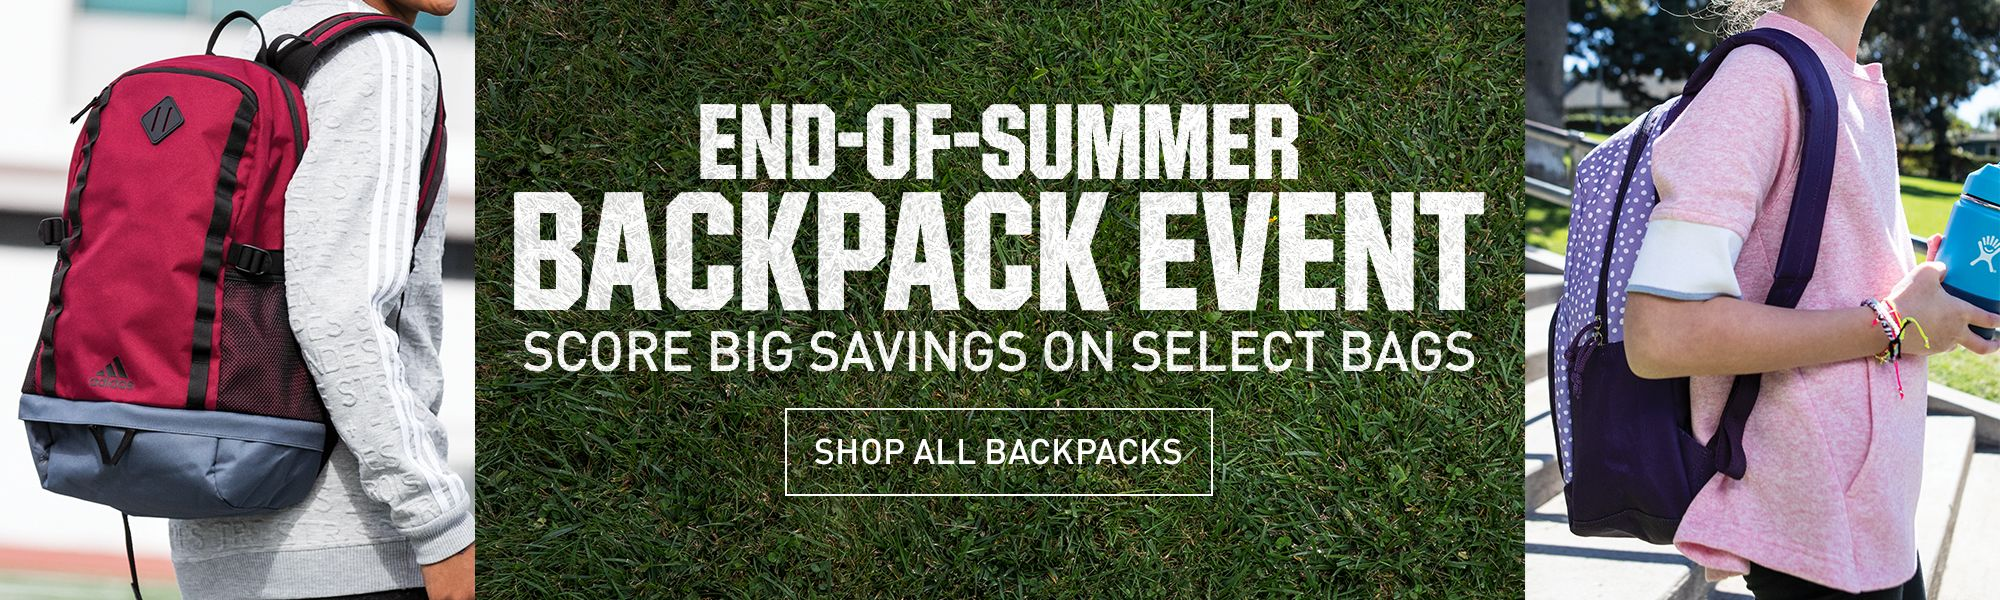 End of Summer Backpack Event. Score Big Savings on Select Backpacks. Shop All Backpacks.